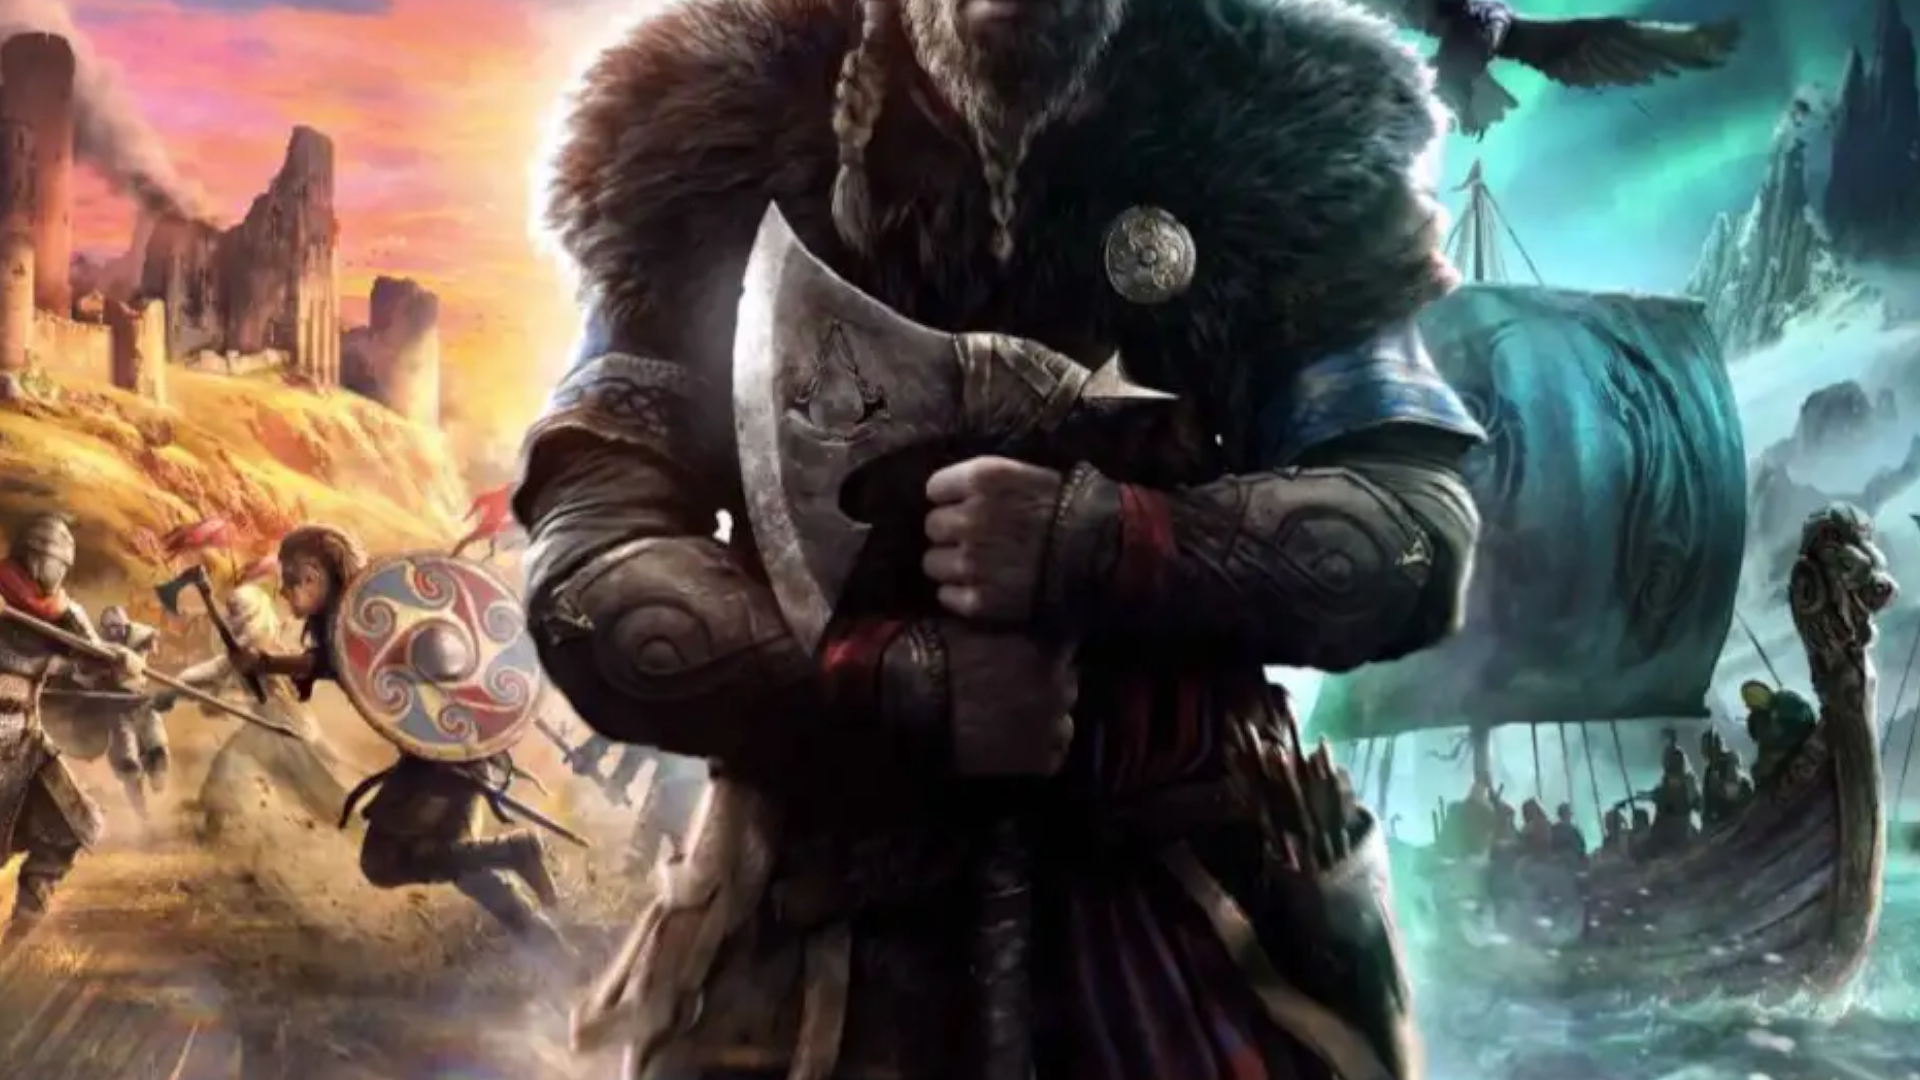 Game Info And Leaks Assassins Creed Valhalla Hd Wallpaper Mobile